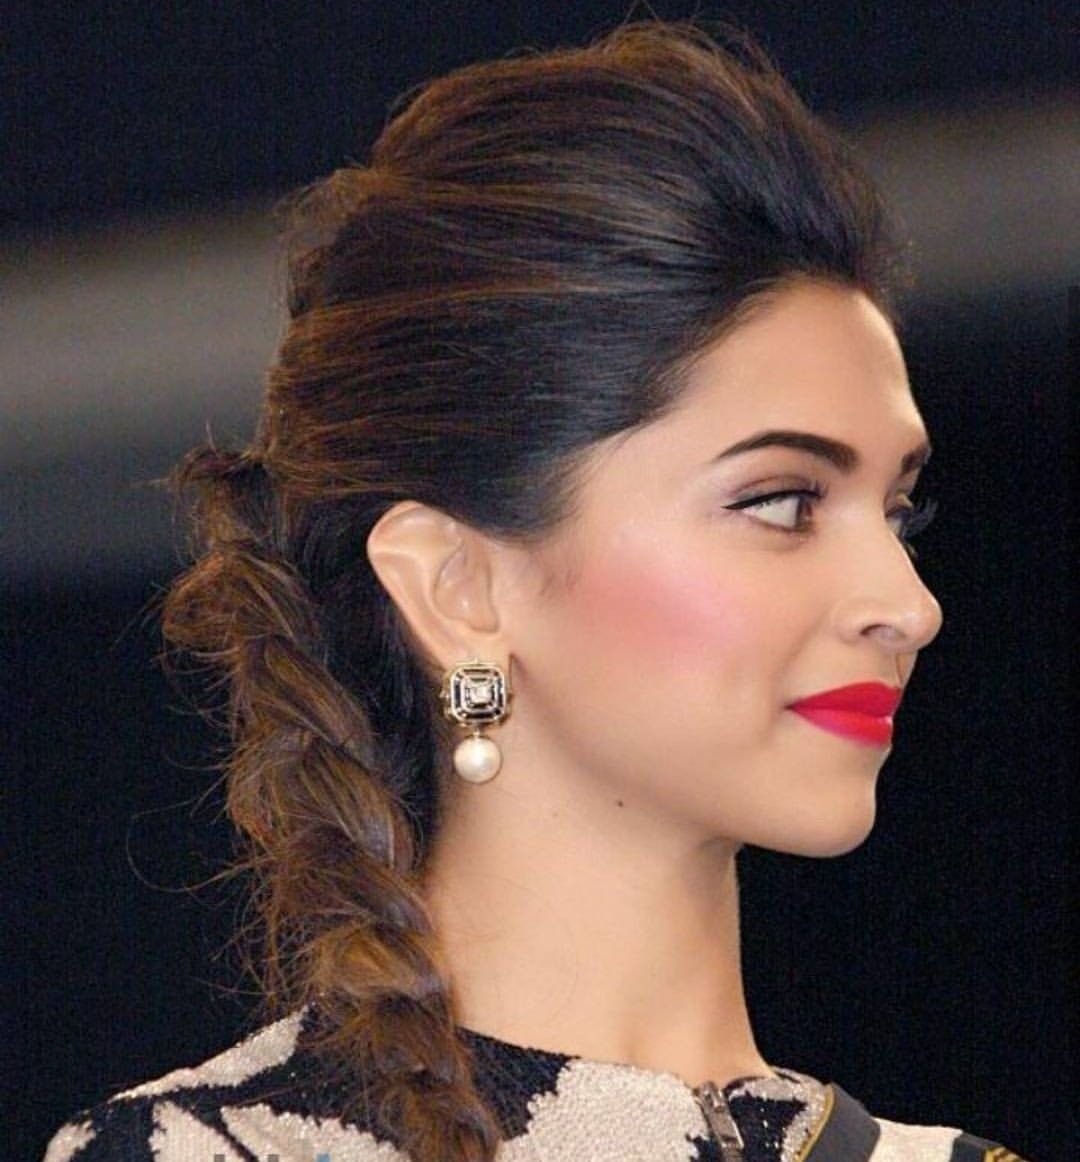 Deepika Padukone | Deepika hairstyles, Stylish hair, Hair puff